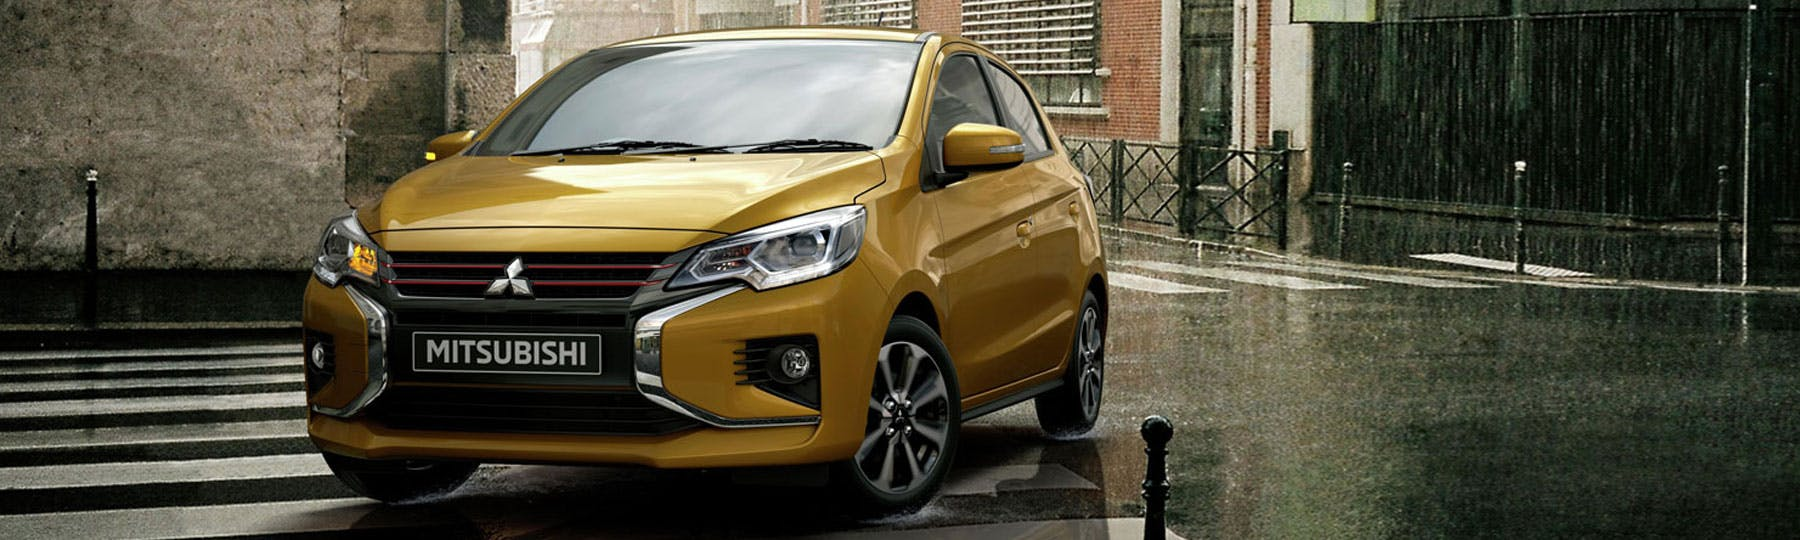 New Mitsubishi Mirage